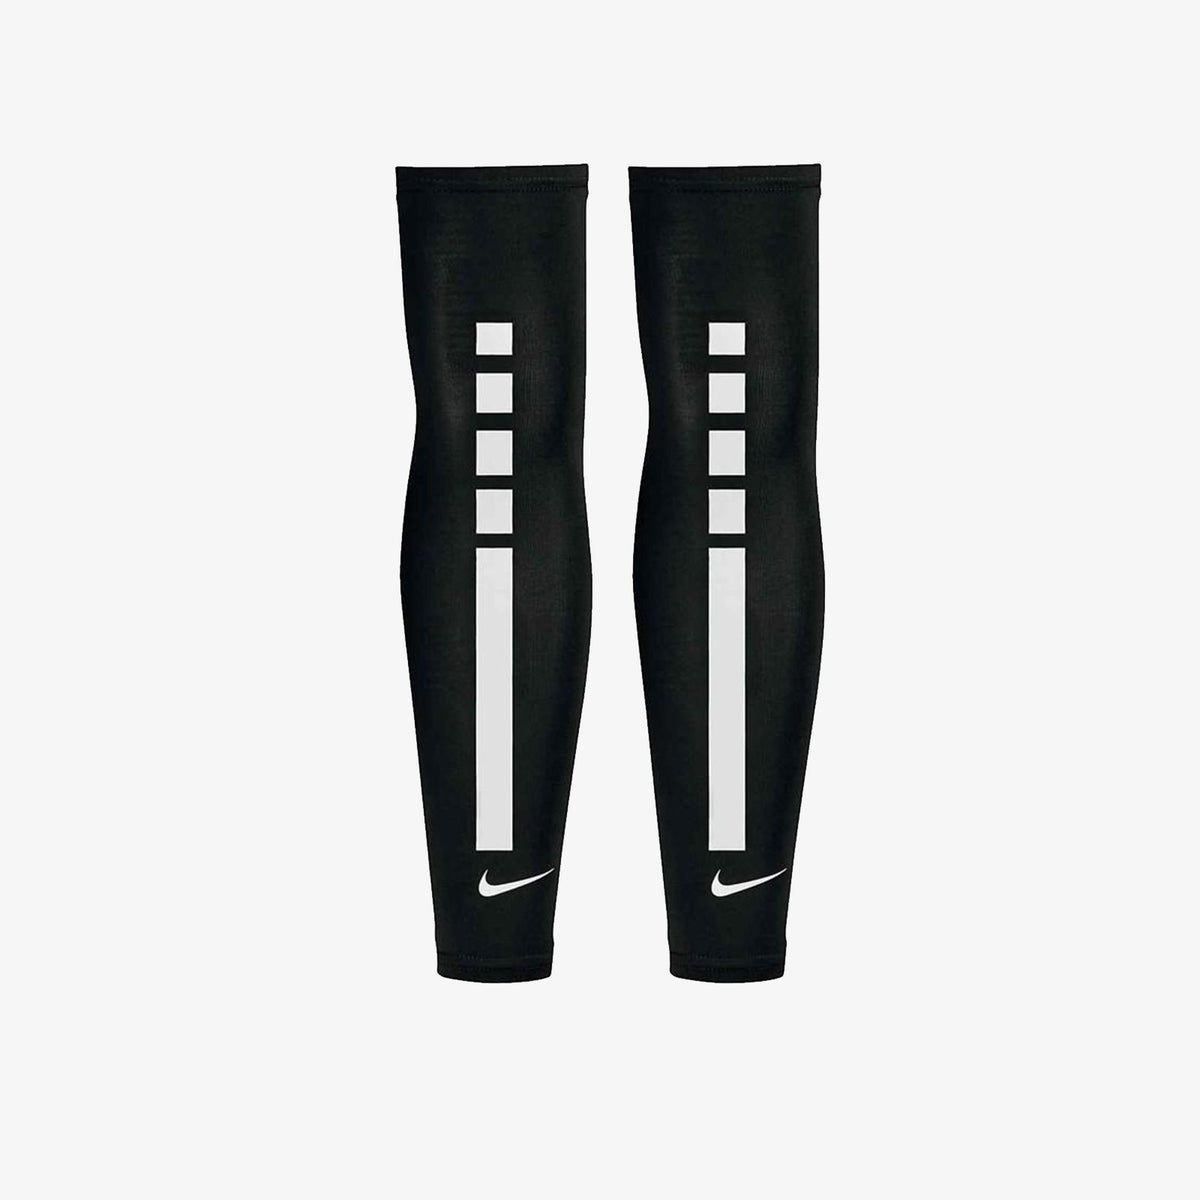 Nike Pro Elite Sleeves 2.0 (2 Pack) - Black/White